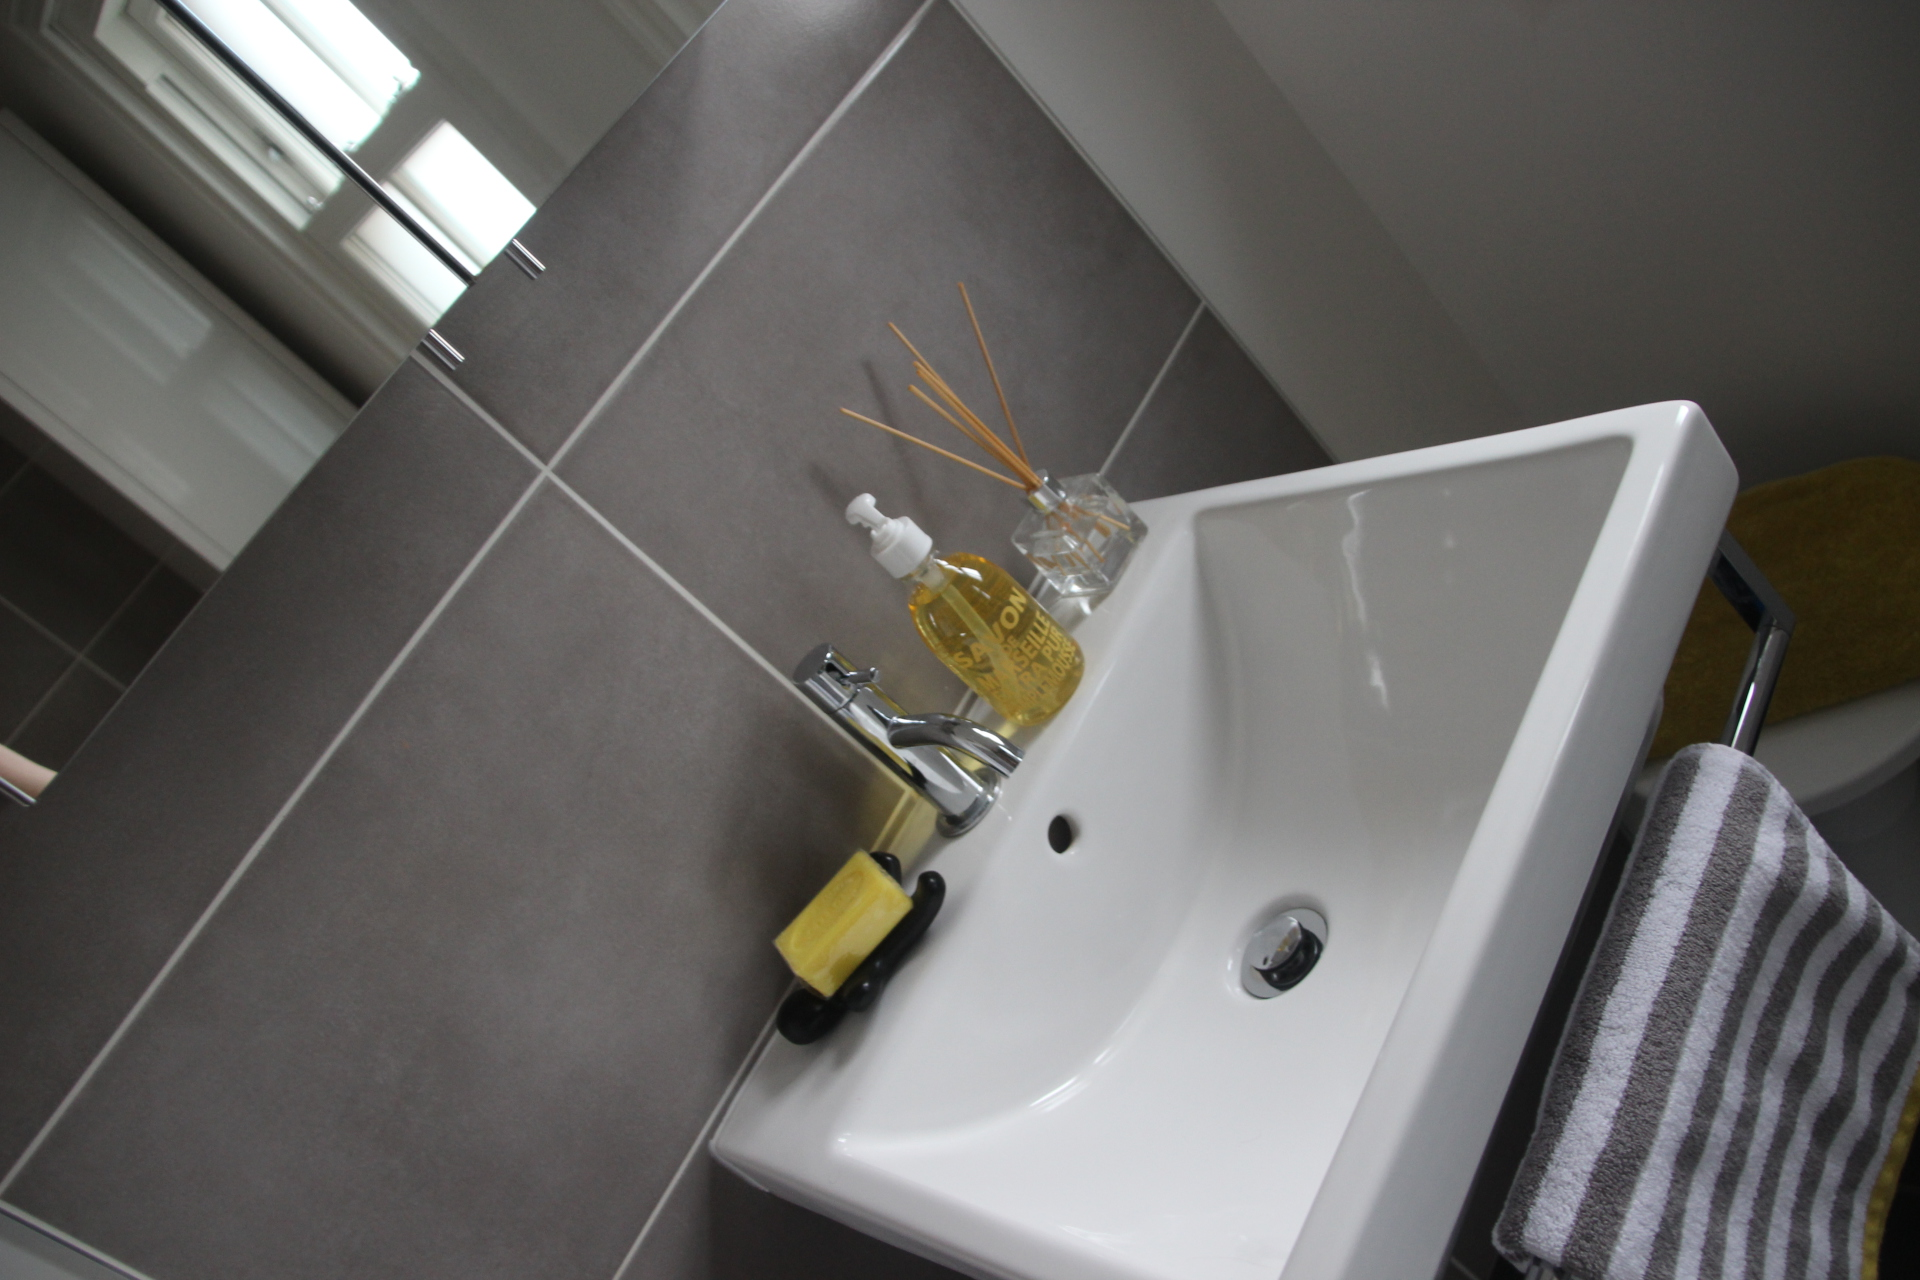 family bathroom; washbasin; stripes; grey; yellow; tiles; white company; towel; scent